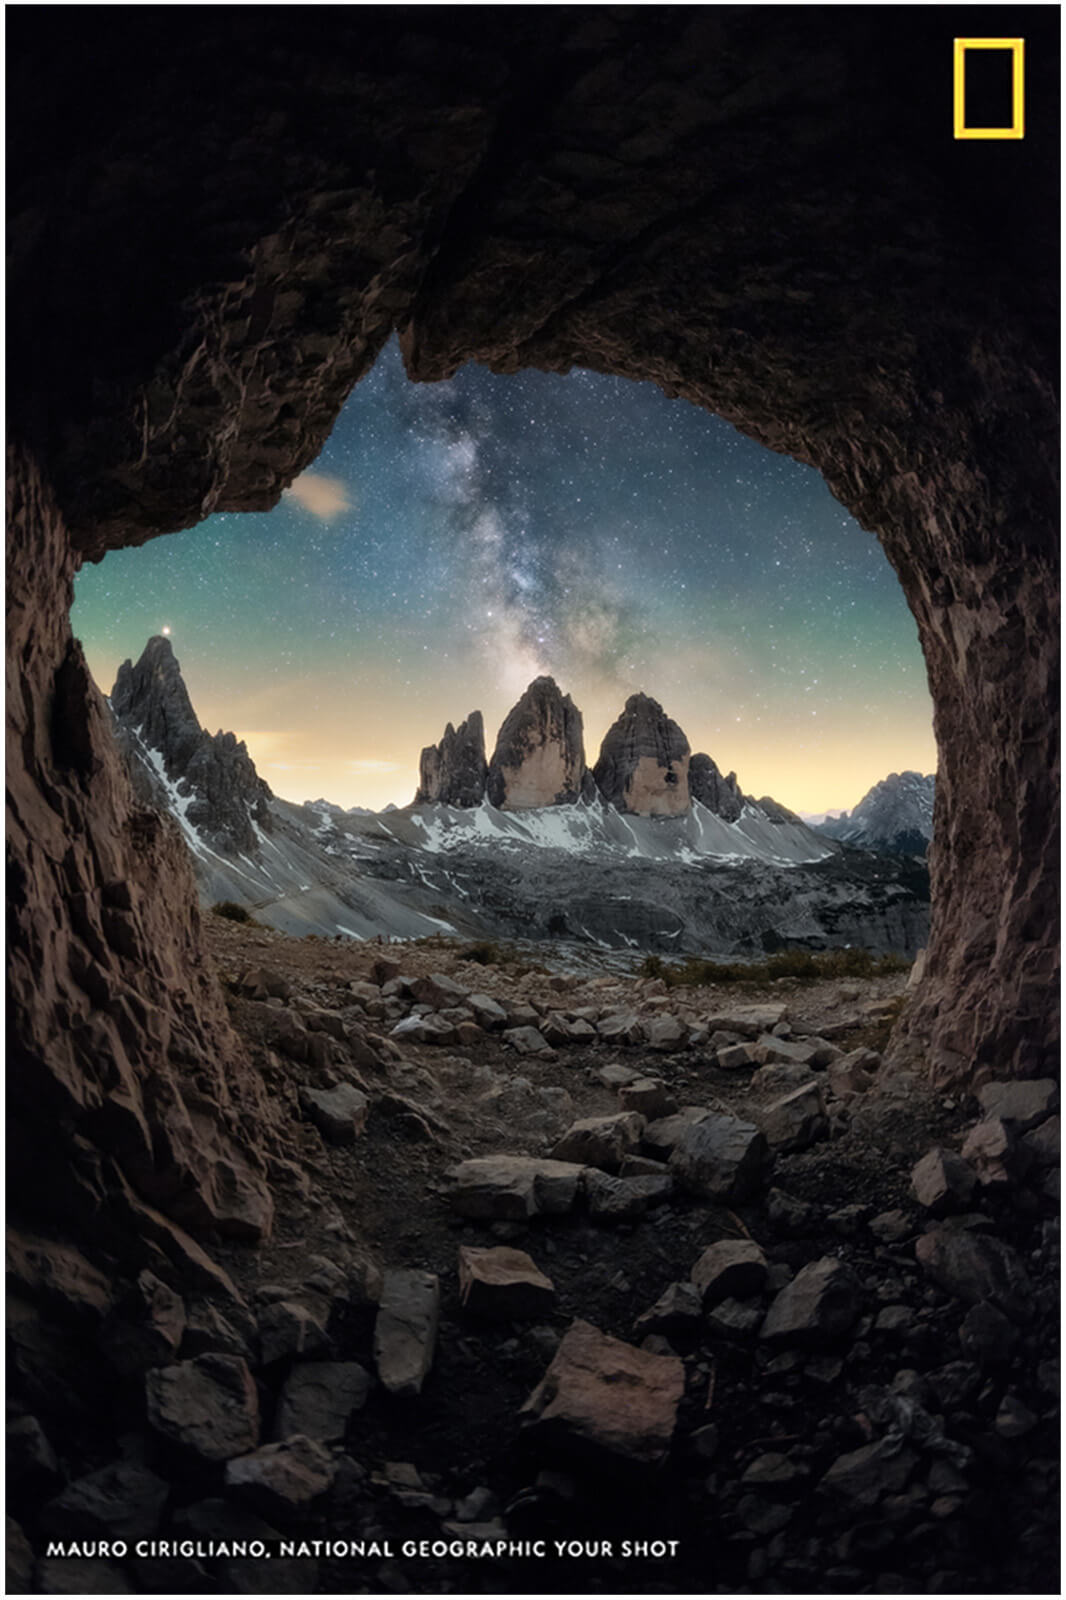 photo published on national geographic of the three peaks of lavaredo photographed from a cave